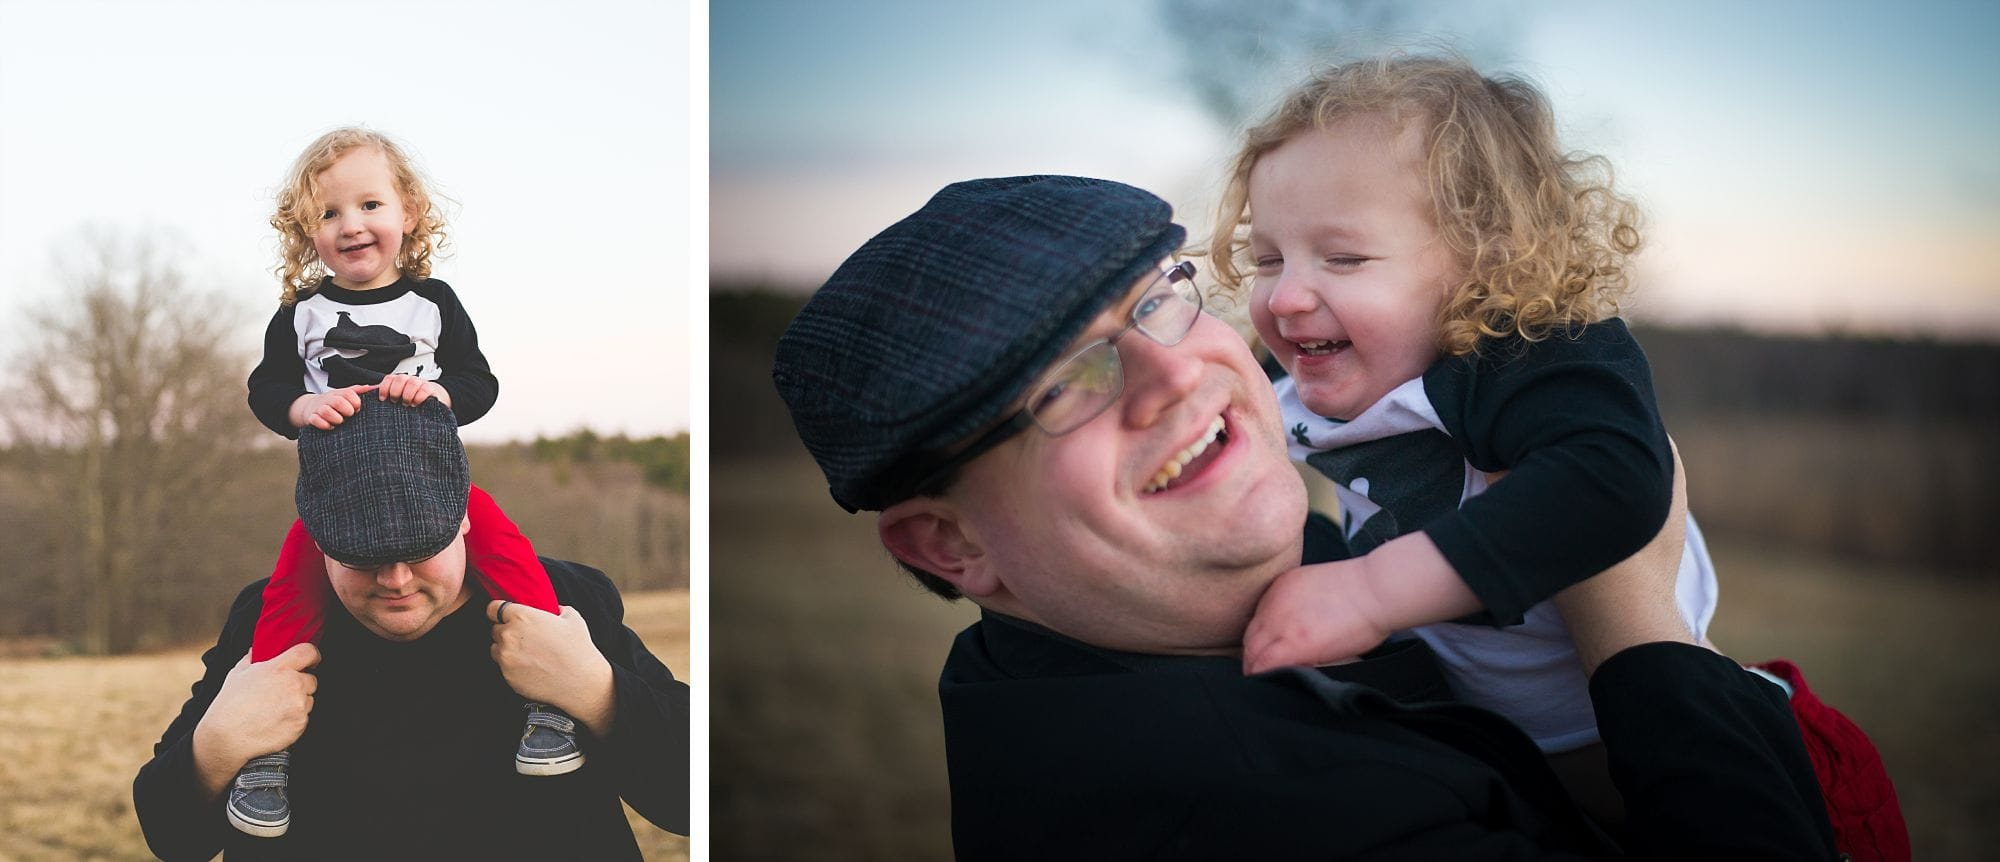 Father holds his son on his shoulders as they laugh together in an outdoor portrait